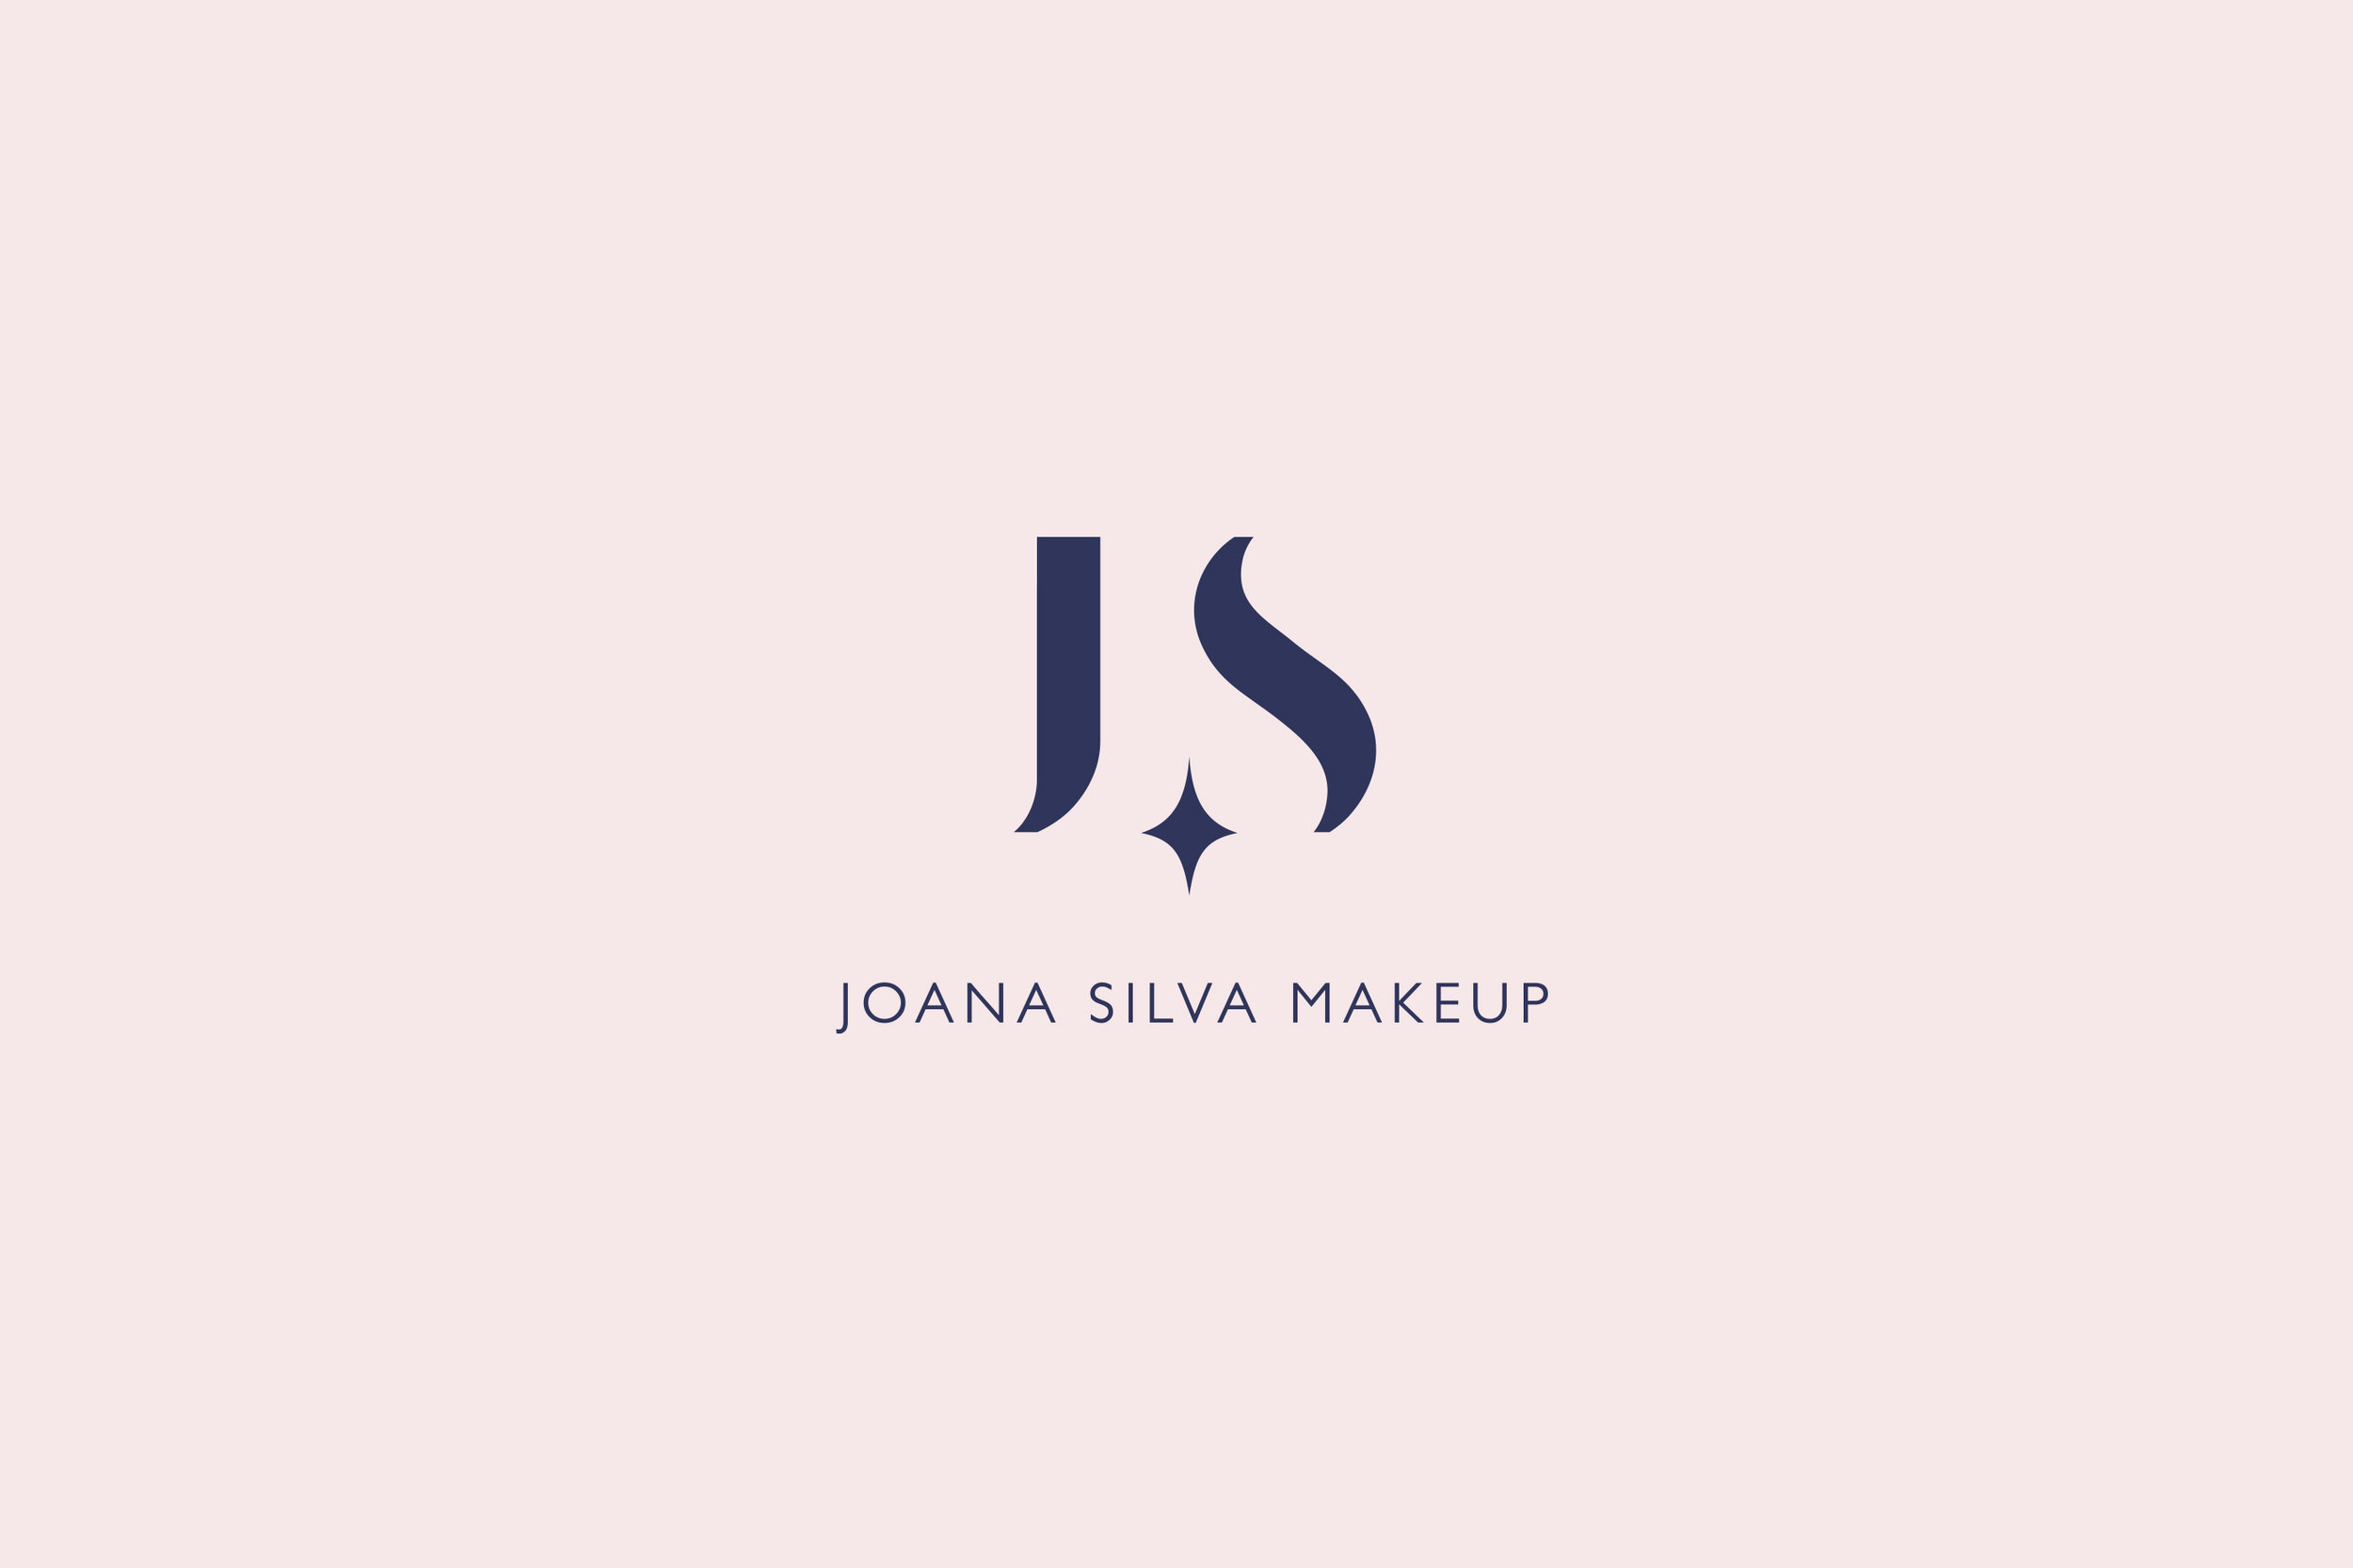 Joana+Silva+Makeup+logo+by+Gen+Design+Studio.jpg